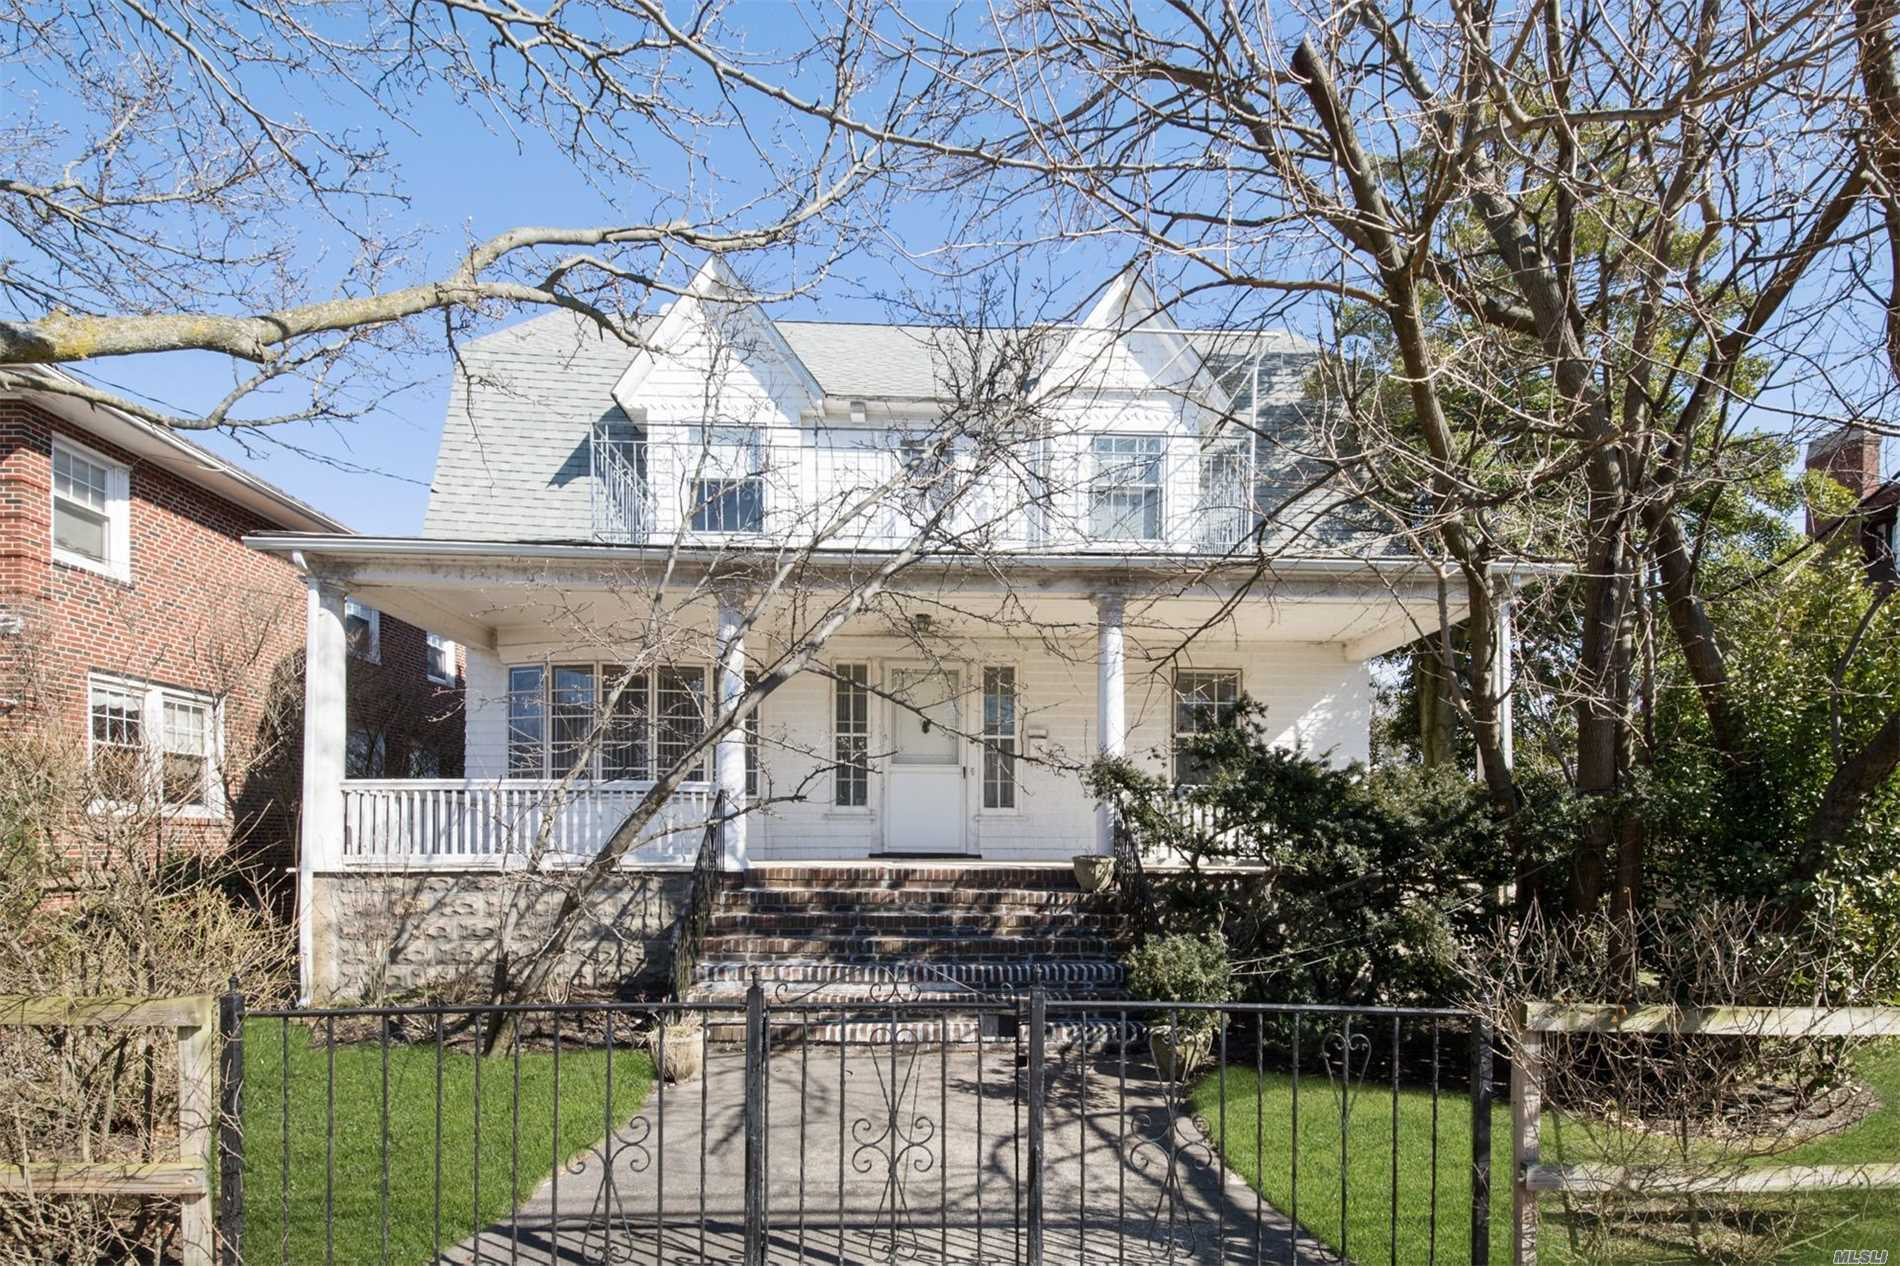 Renovate This Stately Rockaway Gem And Have One Of The Best Homes In All Of Belle Harbor! Located Just One Short Block To The Beach.Massive Front Porch, Impressive Over-Sized Front Door, High Ceilings On The Entire First Floor, Lr With Fireplace, Hw Floors, 4Br's, 3 Full Baths Plus A Walk Up Third Floor With An Additional 2Br's, Office Or Storage. Large Unfinished Basement With High Ceilings, 2 Car Garage, Large Private Back Yard And Plenty Of Parking. Legal 2 Family Used As A One. Call Today!